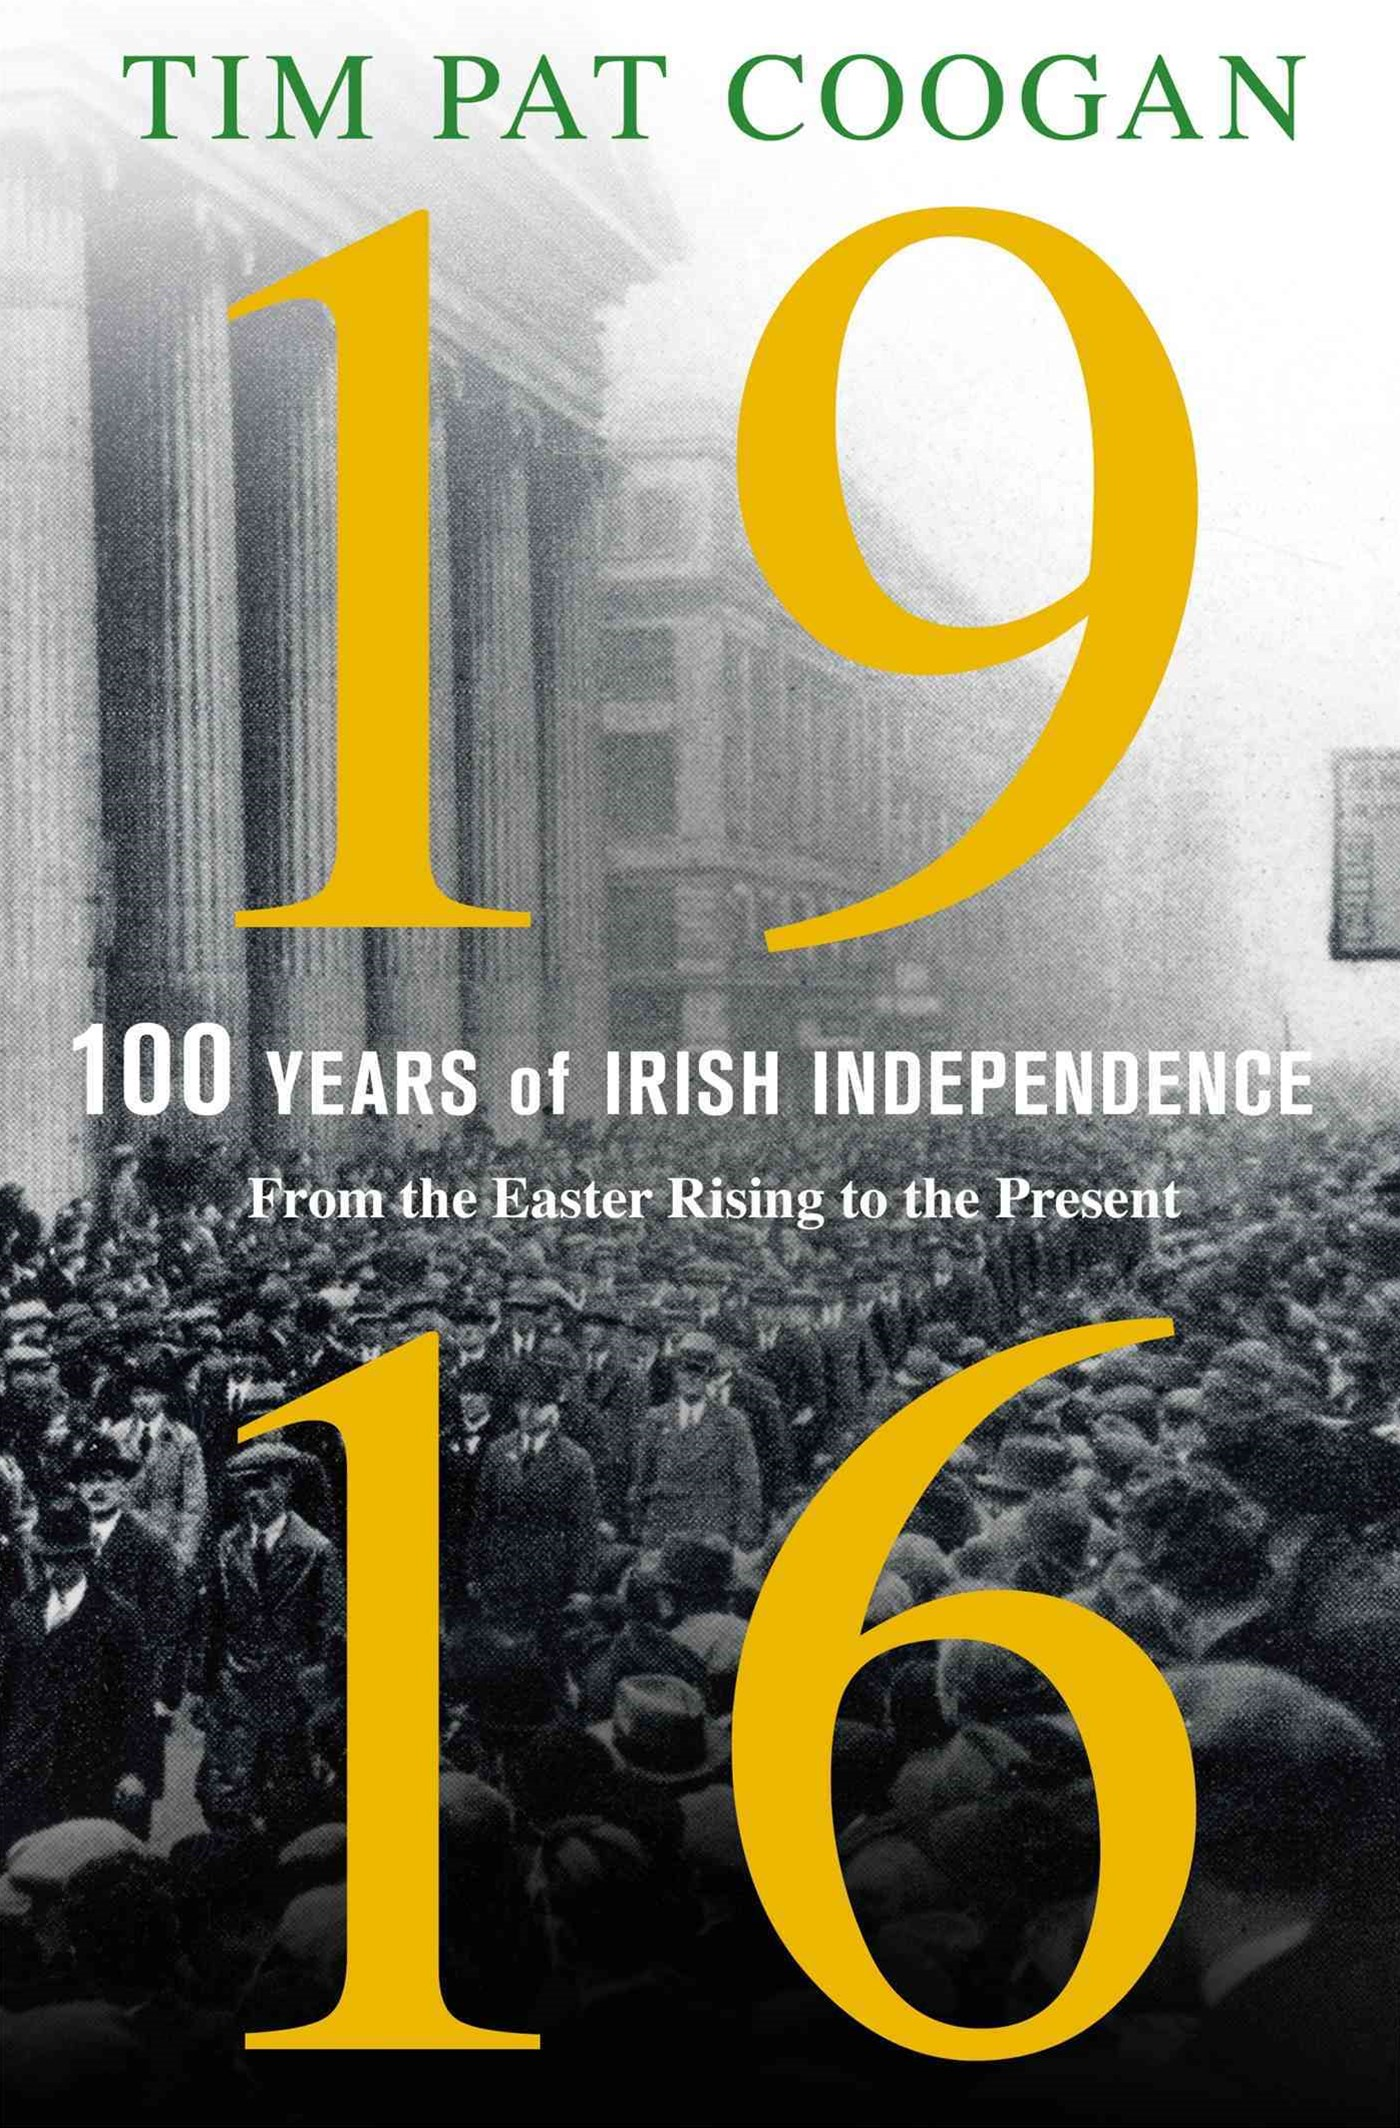 1916 - 100 Years of Irish Independence